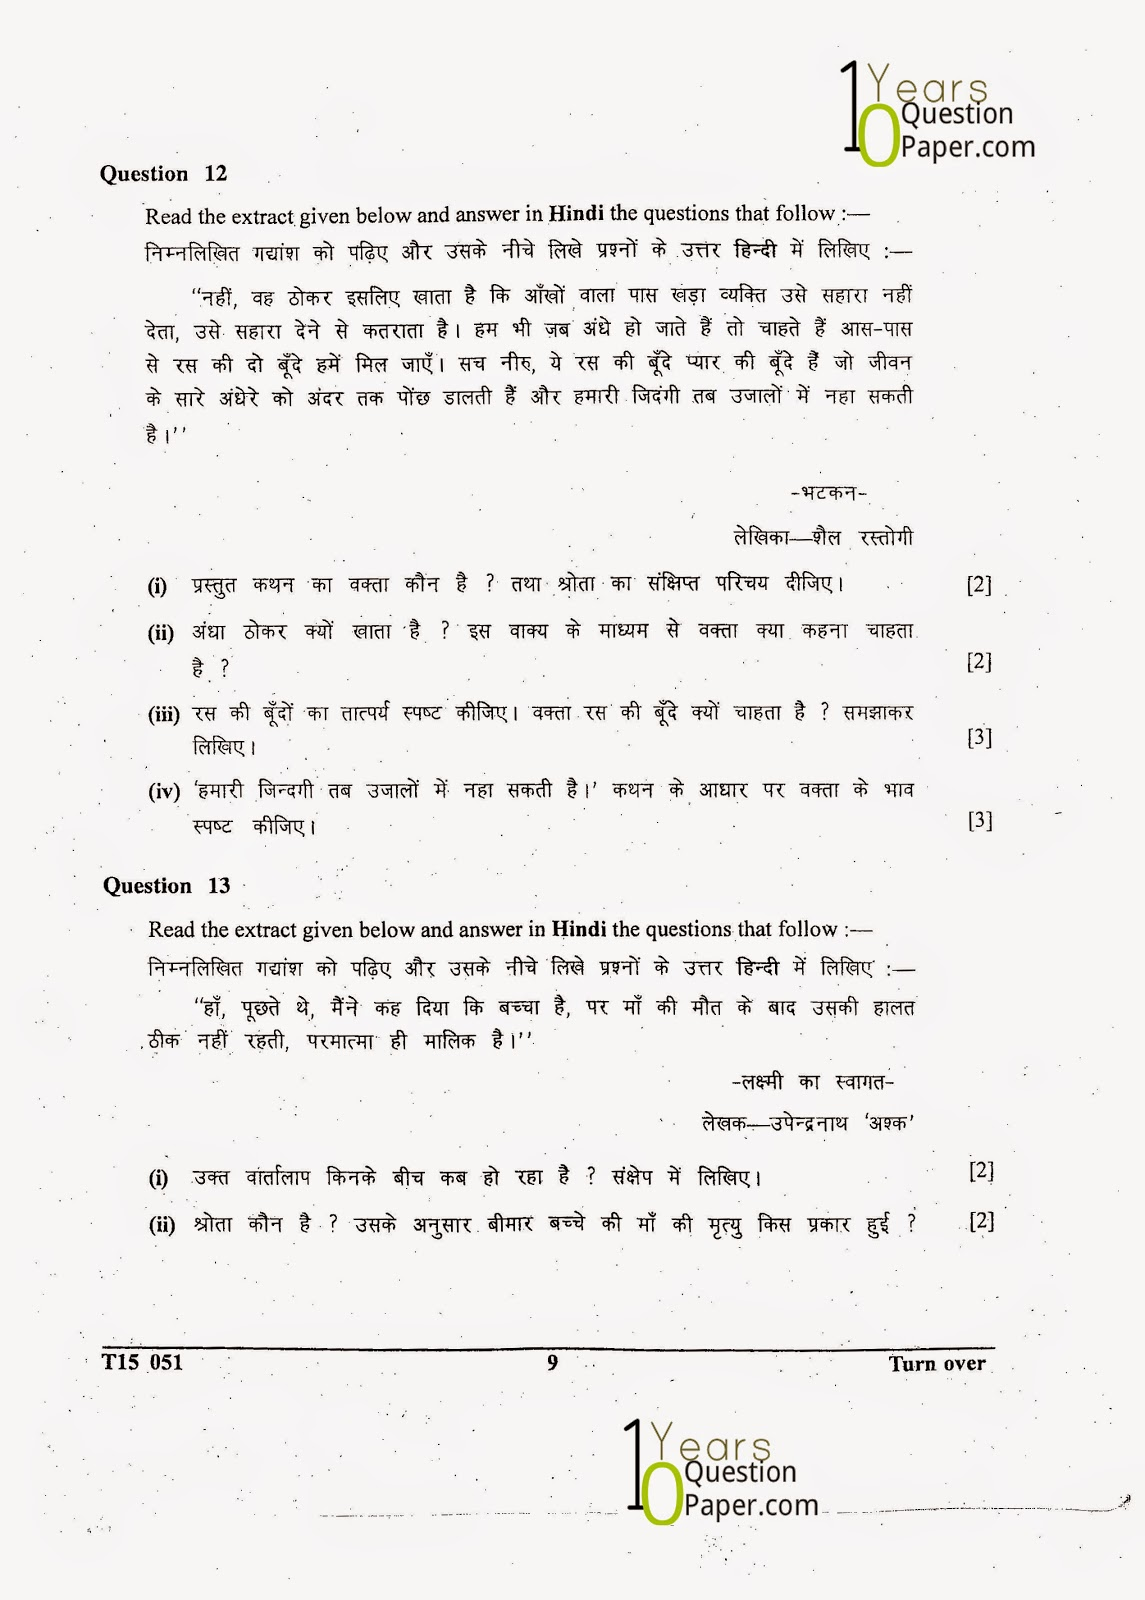 Worksheet Comprehension Passages For Grade 3 With Questions hindi unseen passage for class 4 cbse 10 english main icse 2015 x board question paper years question